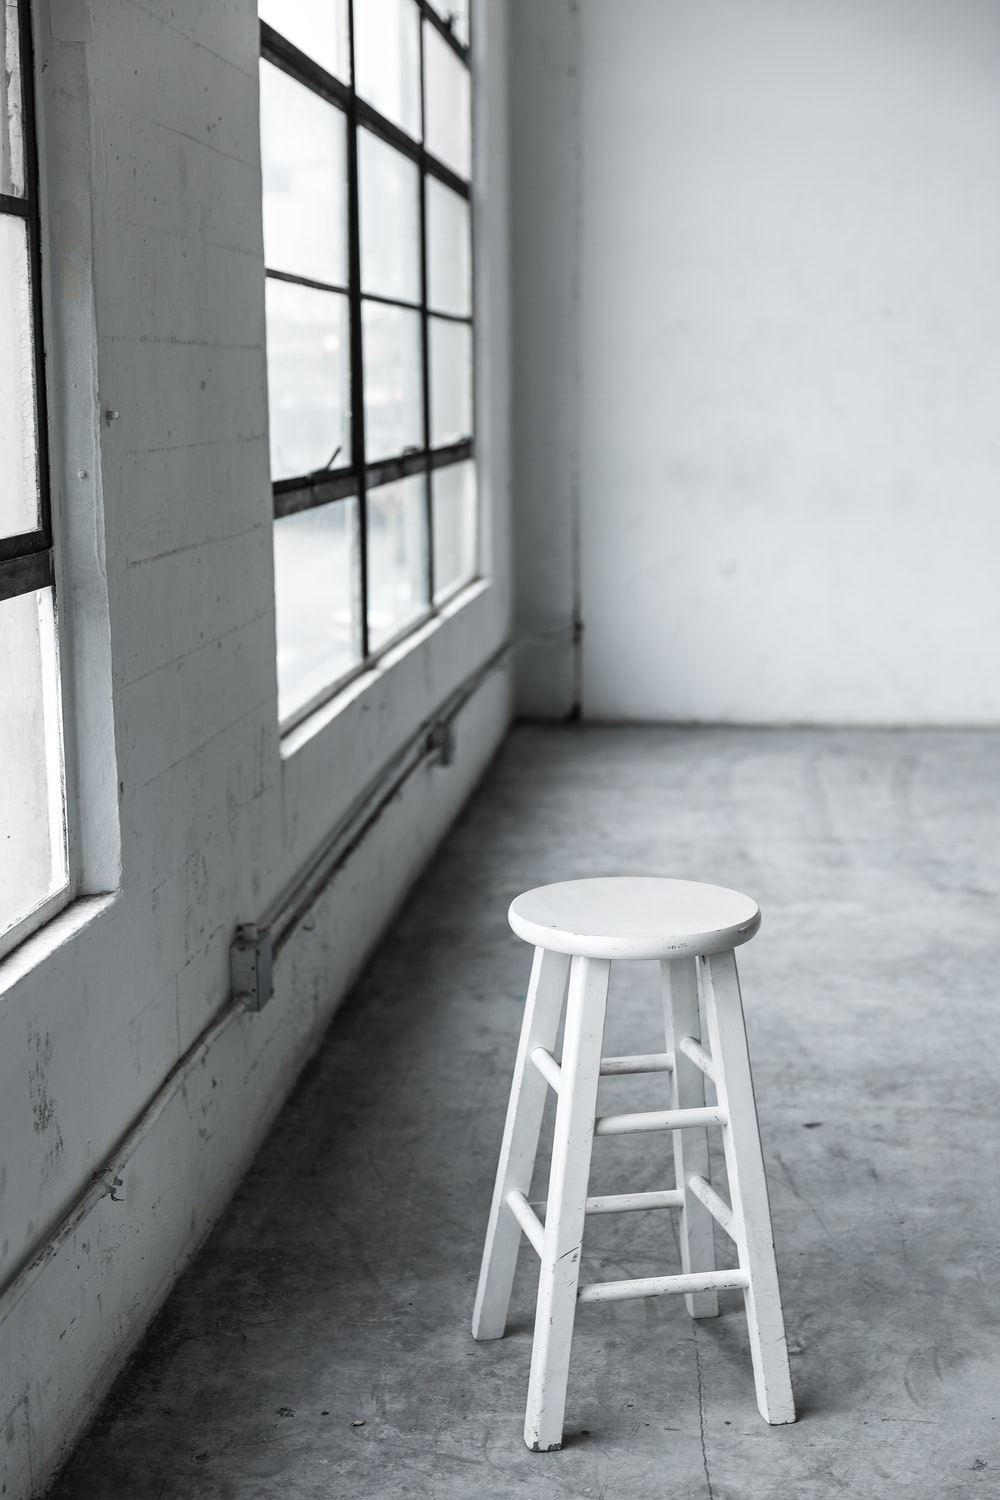 round white wooden stool near closed window